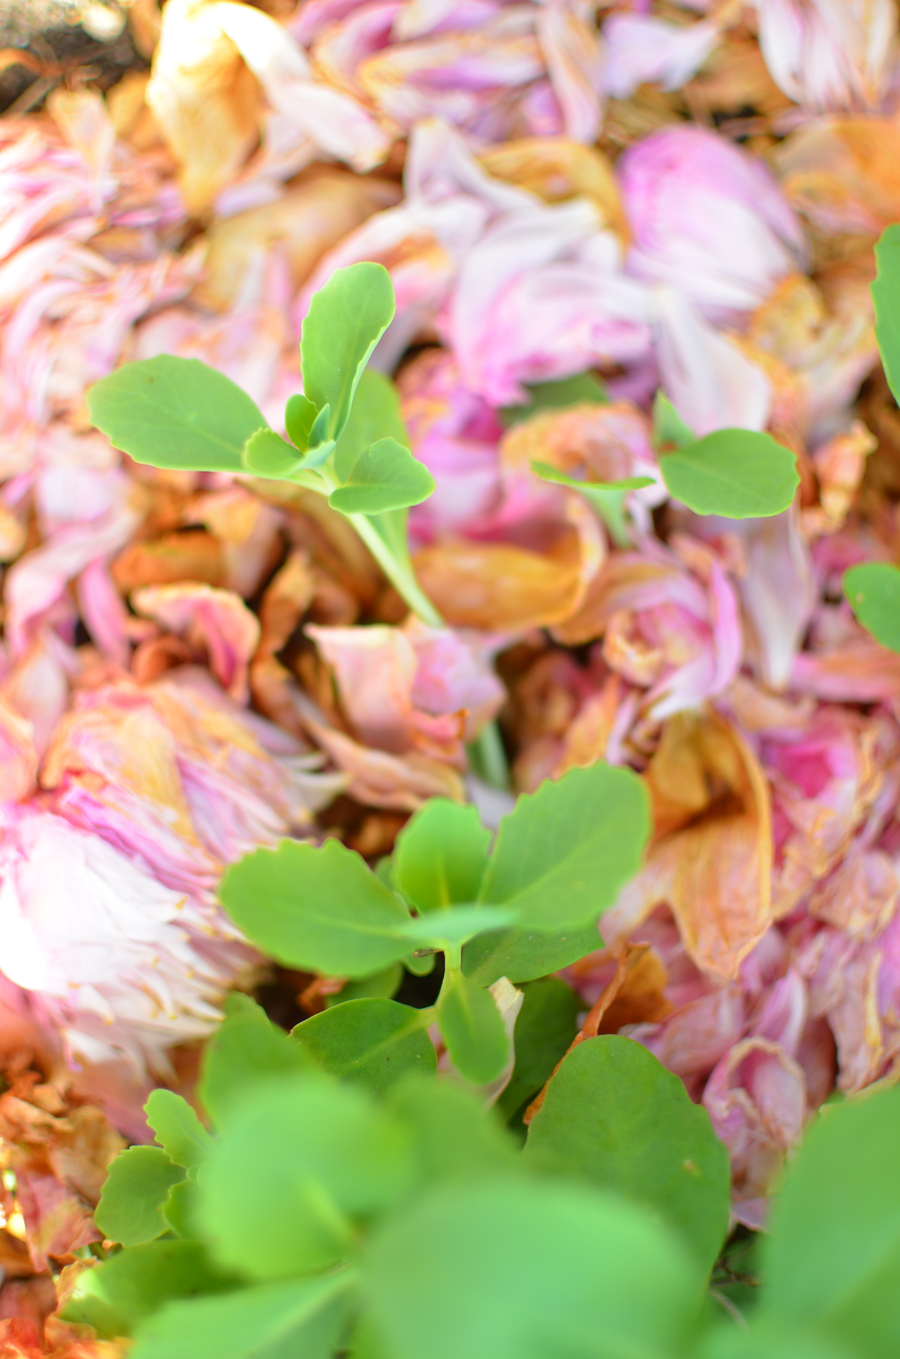 Peony Petals as Mulch by Amy Renea of A Nest for All Seasons, author of Crafting With Nature